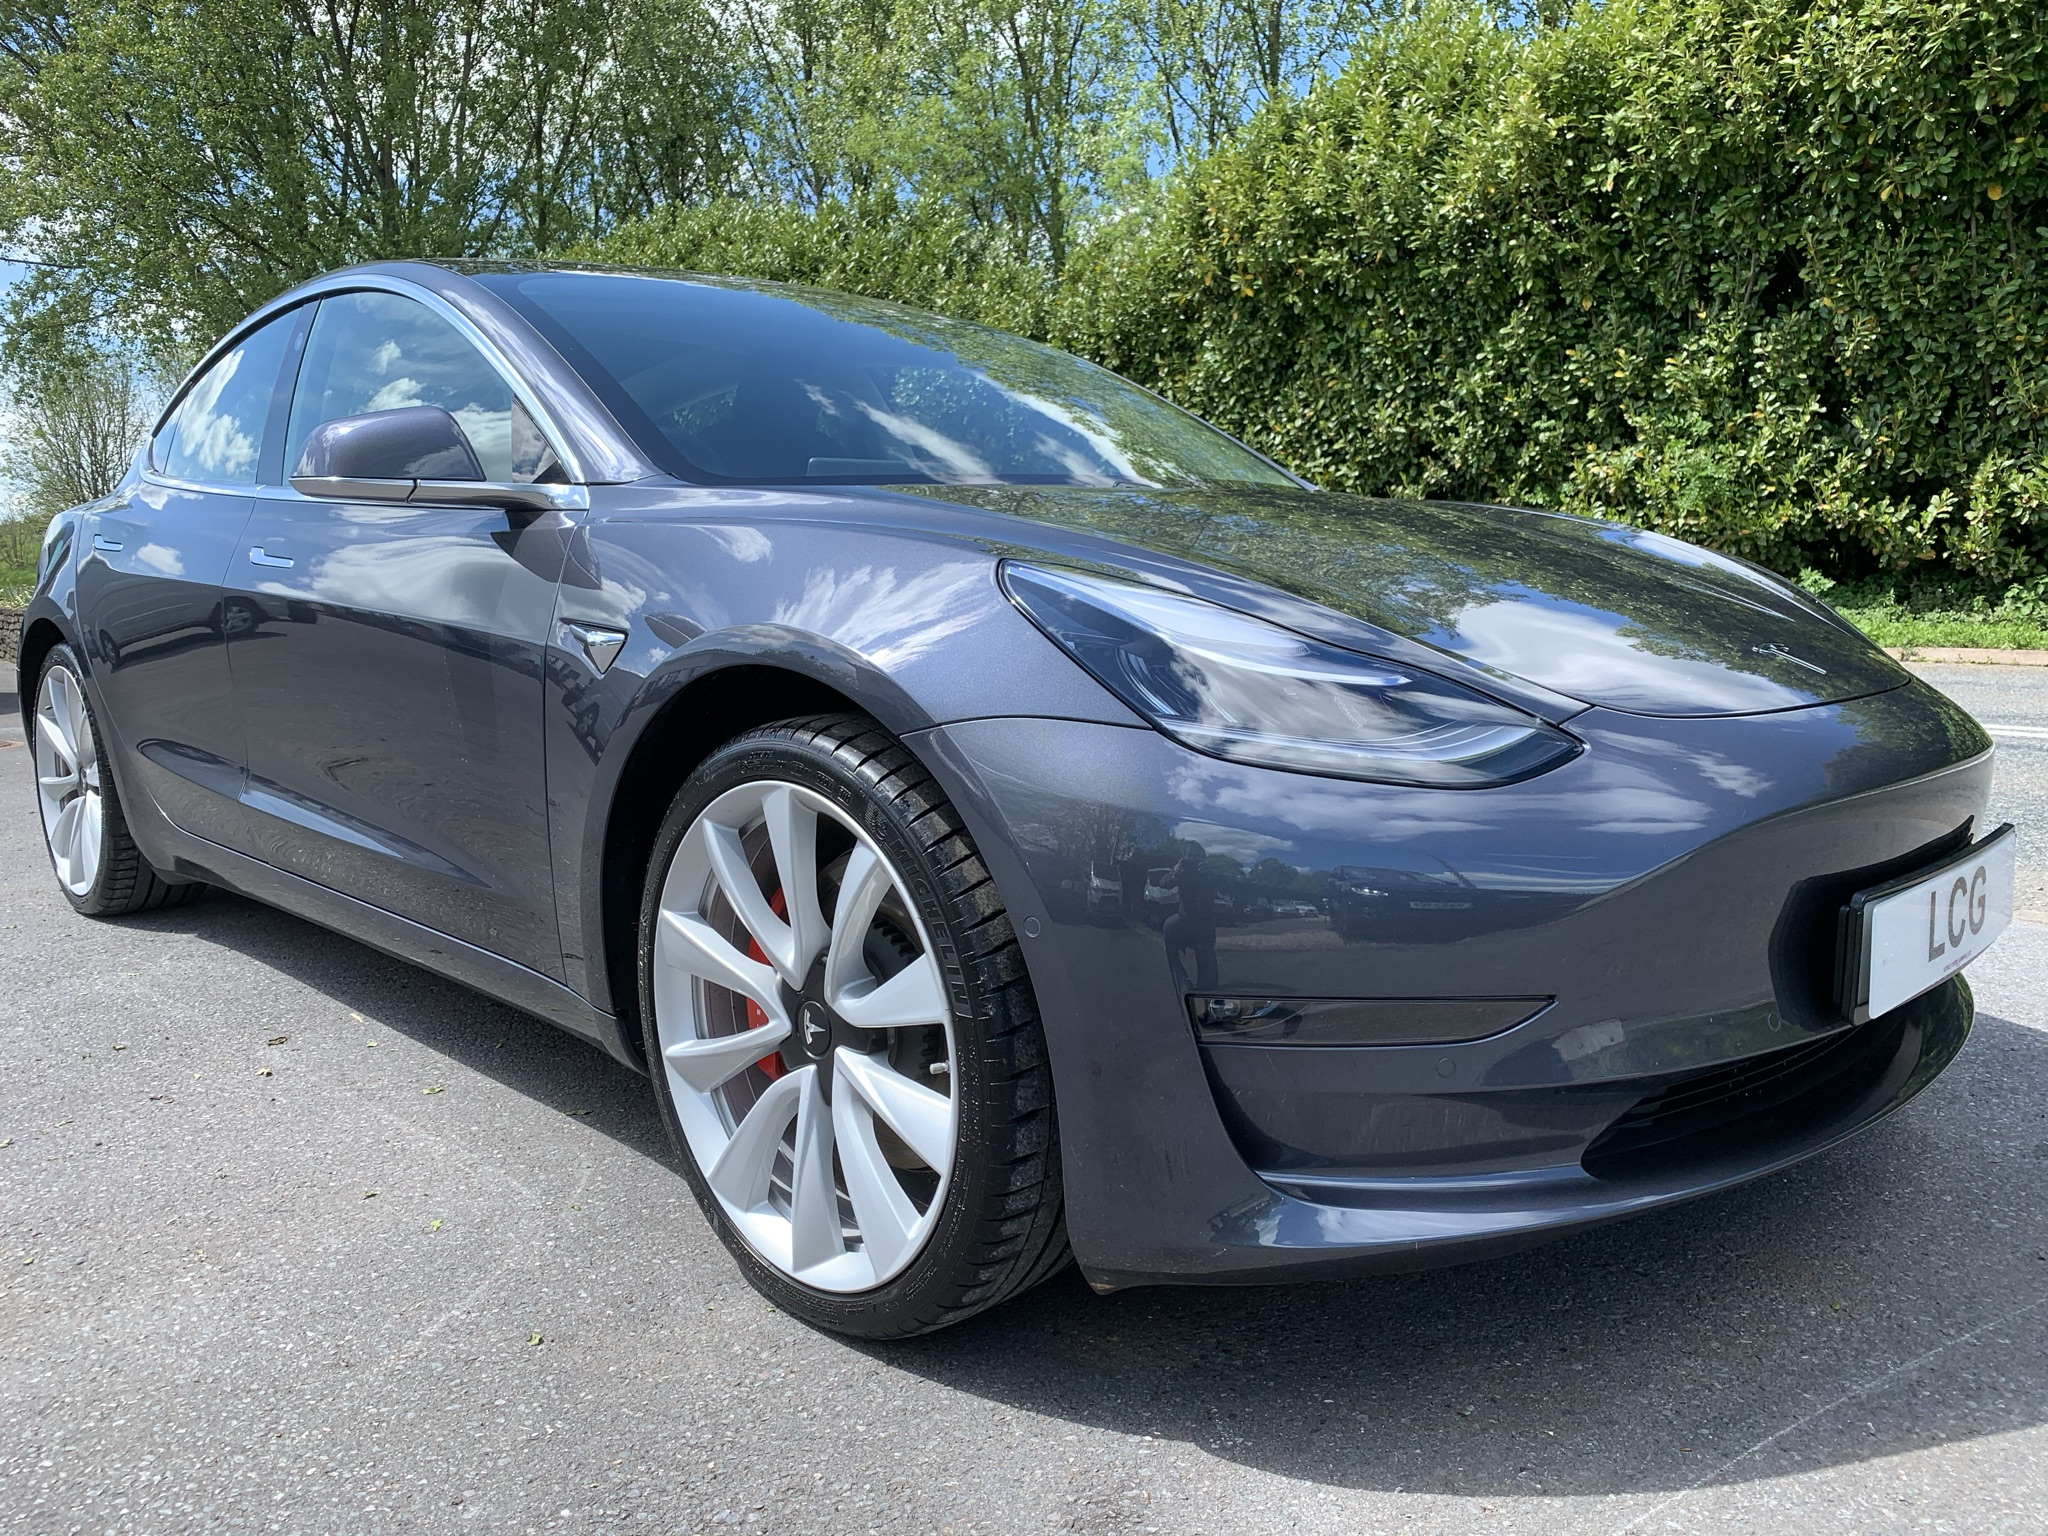 Used Tesla Model 3 Dual Motor Performance AWD Saloon car for sale in Exeter, Devon